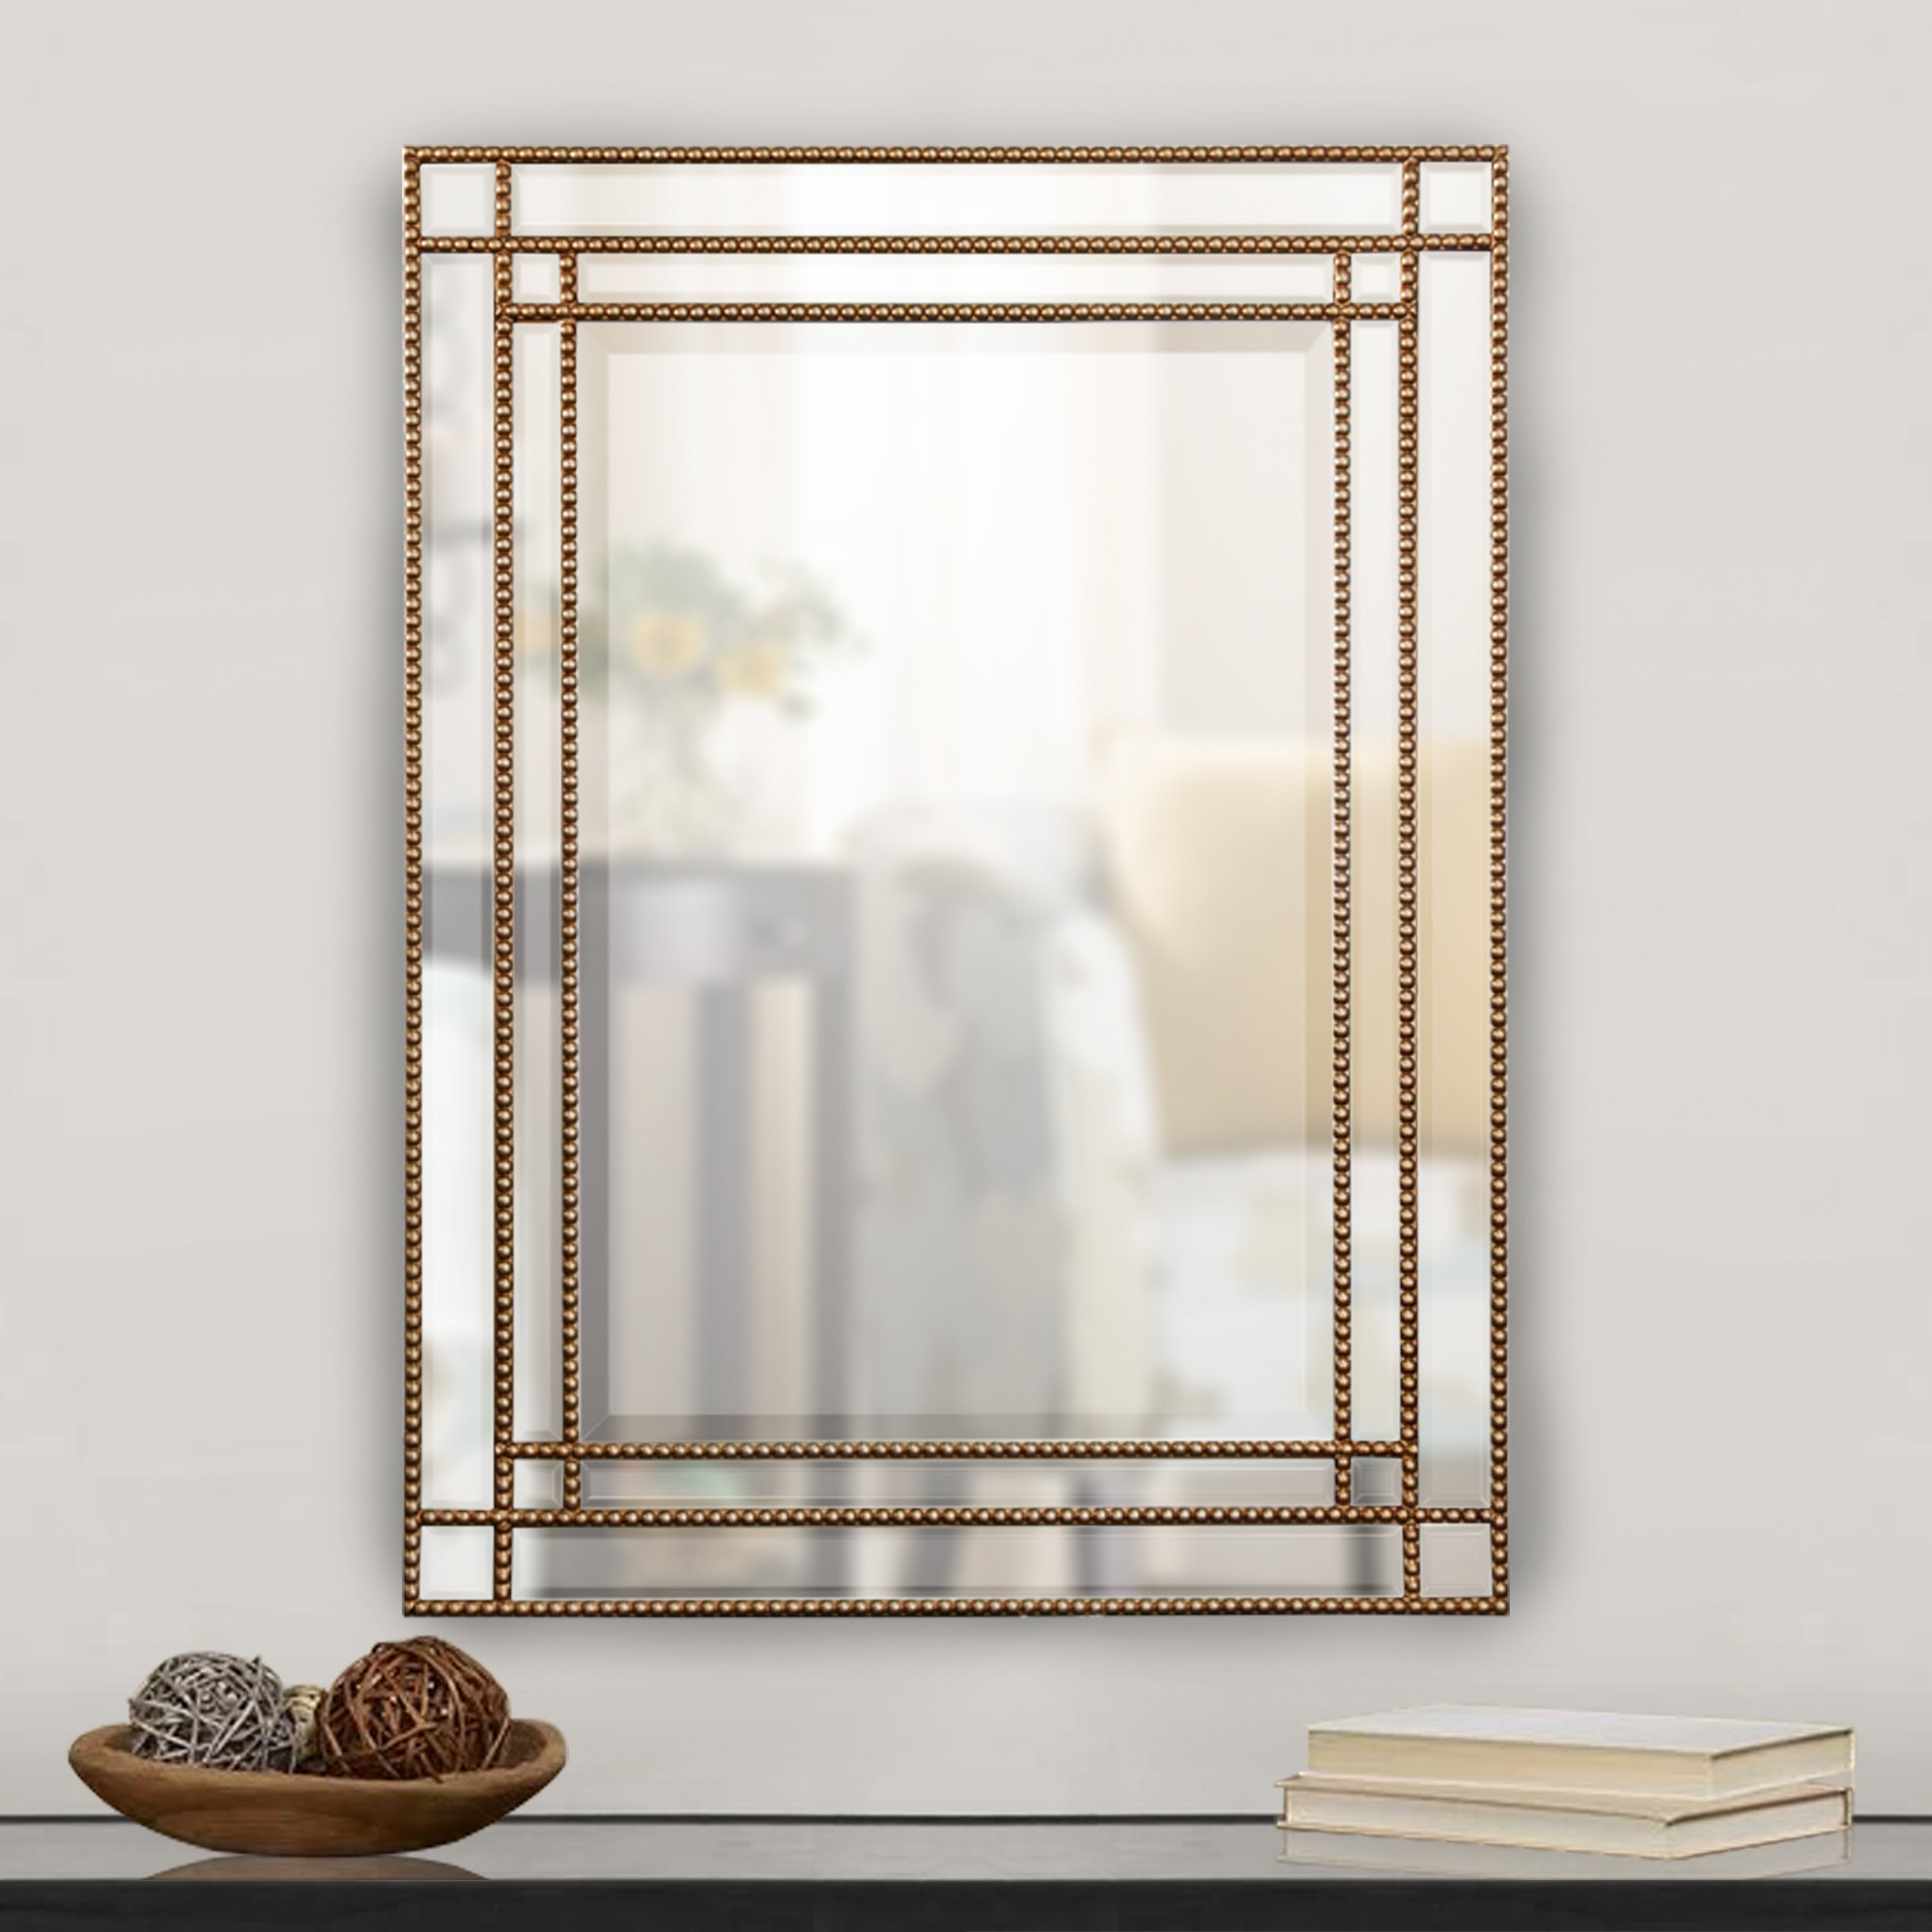 Beaded Frame Mirror | Wayfair Inside Lake Park Beveled Beaded Accent Wall Mirrors (View 5 of 30)